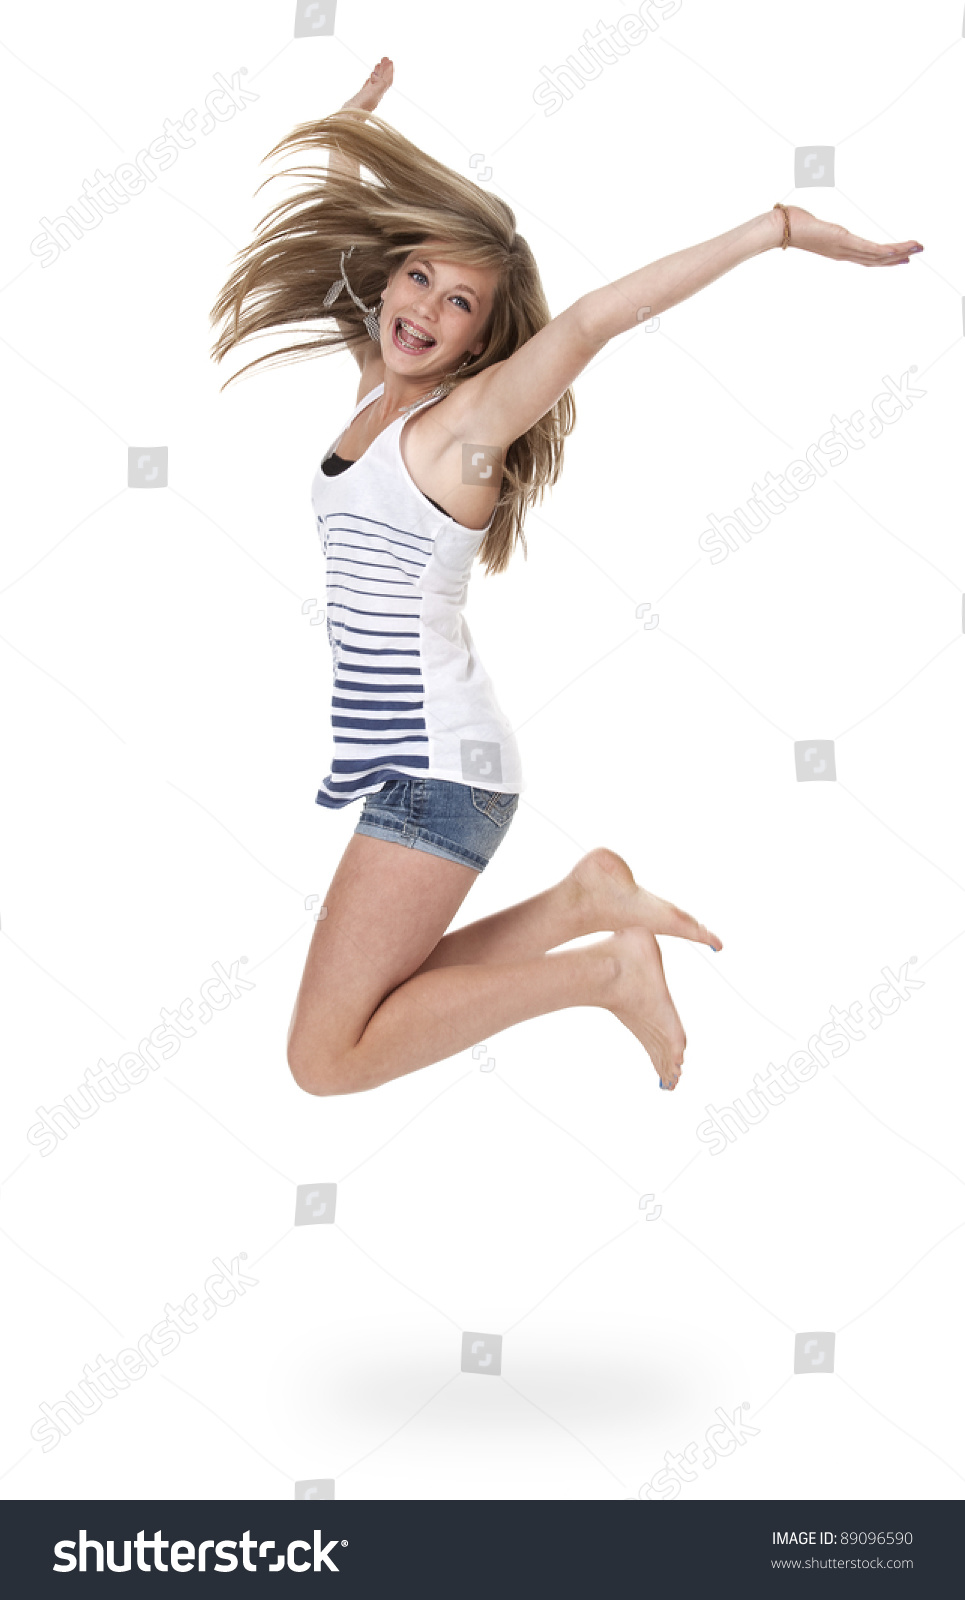 Pretty 14 Year Old Girl Jumping Stock Photo 89096590